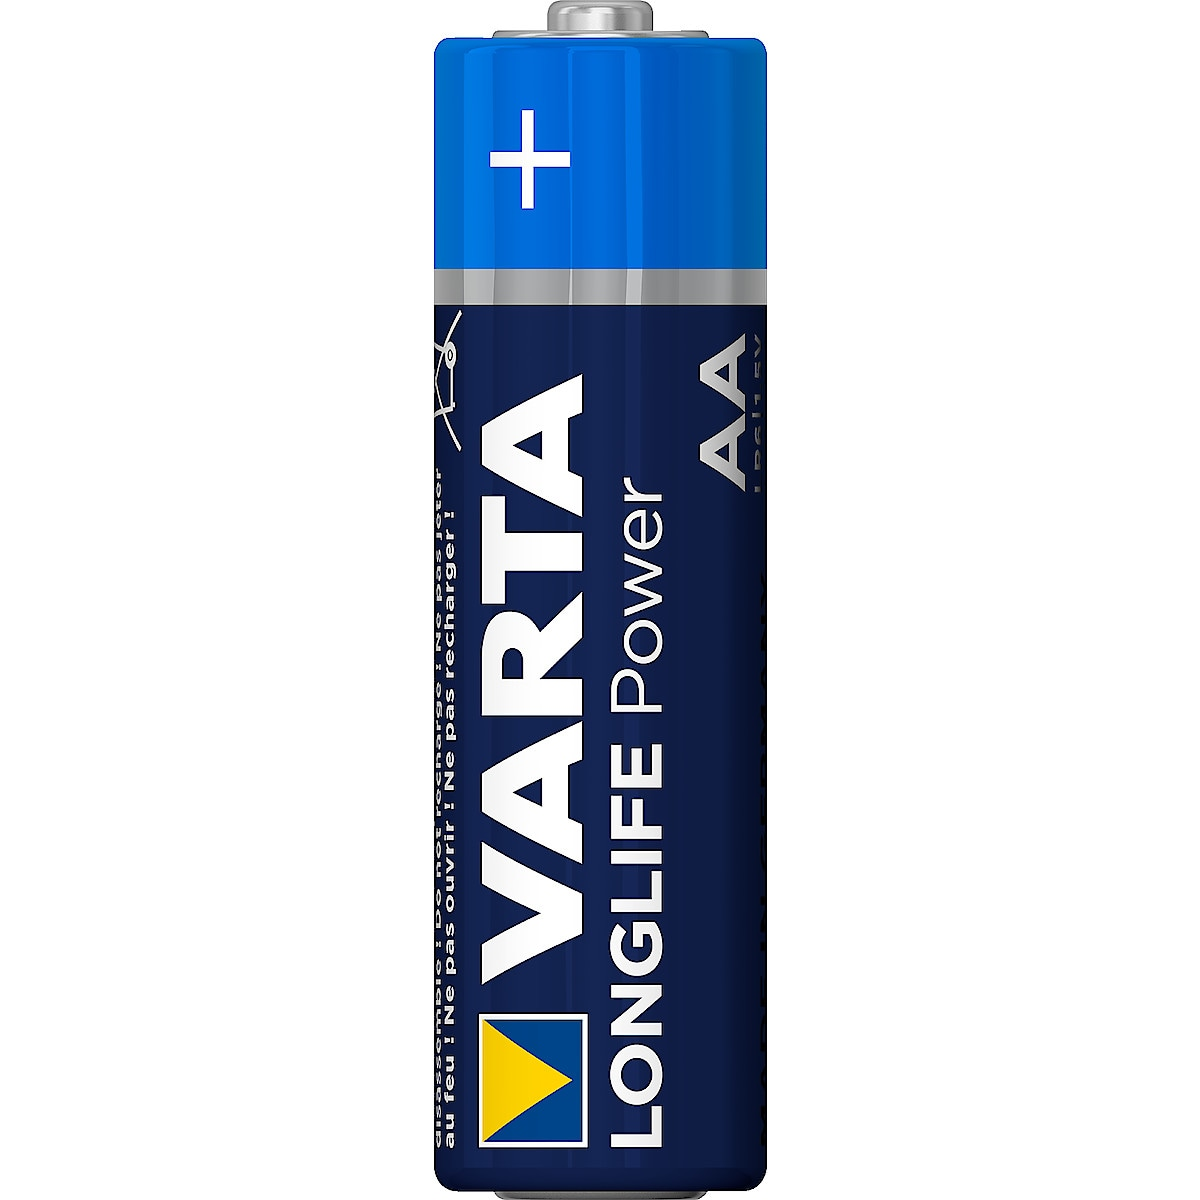 Alkaliparisto AA/LR6 VARTA Longlife Power